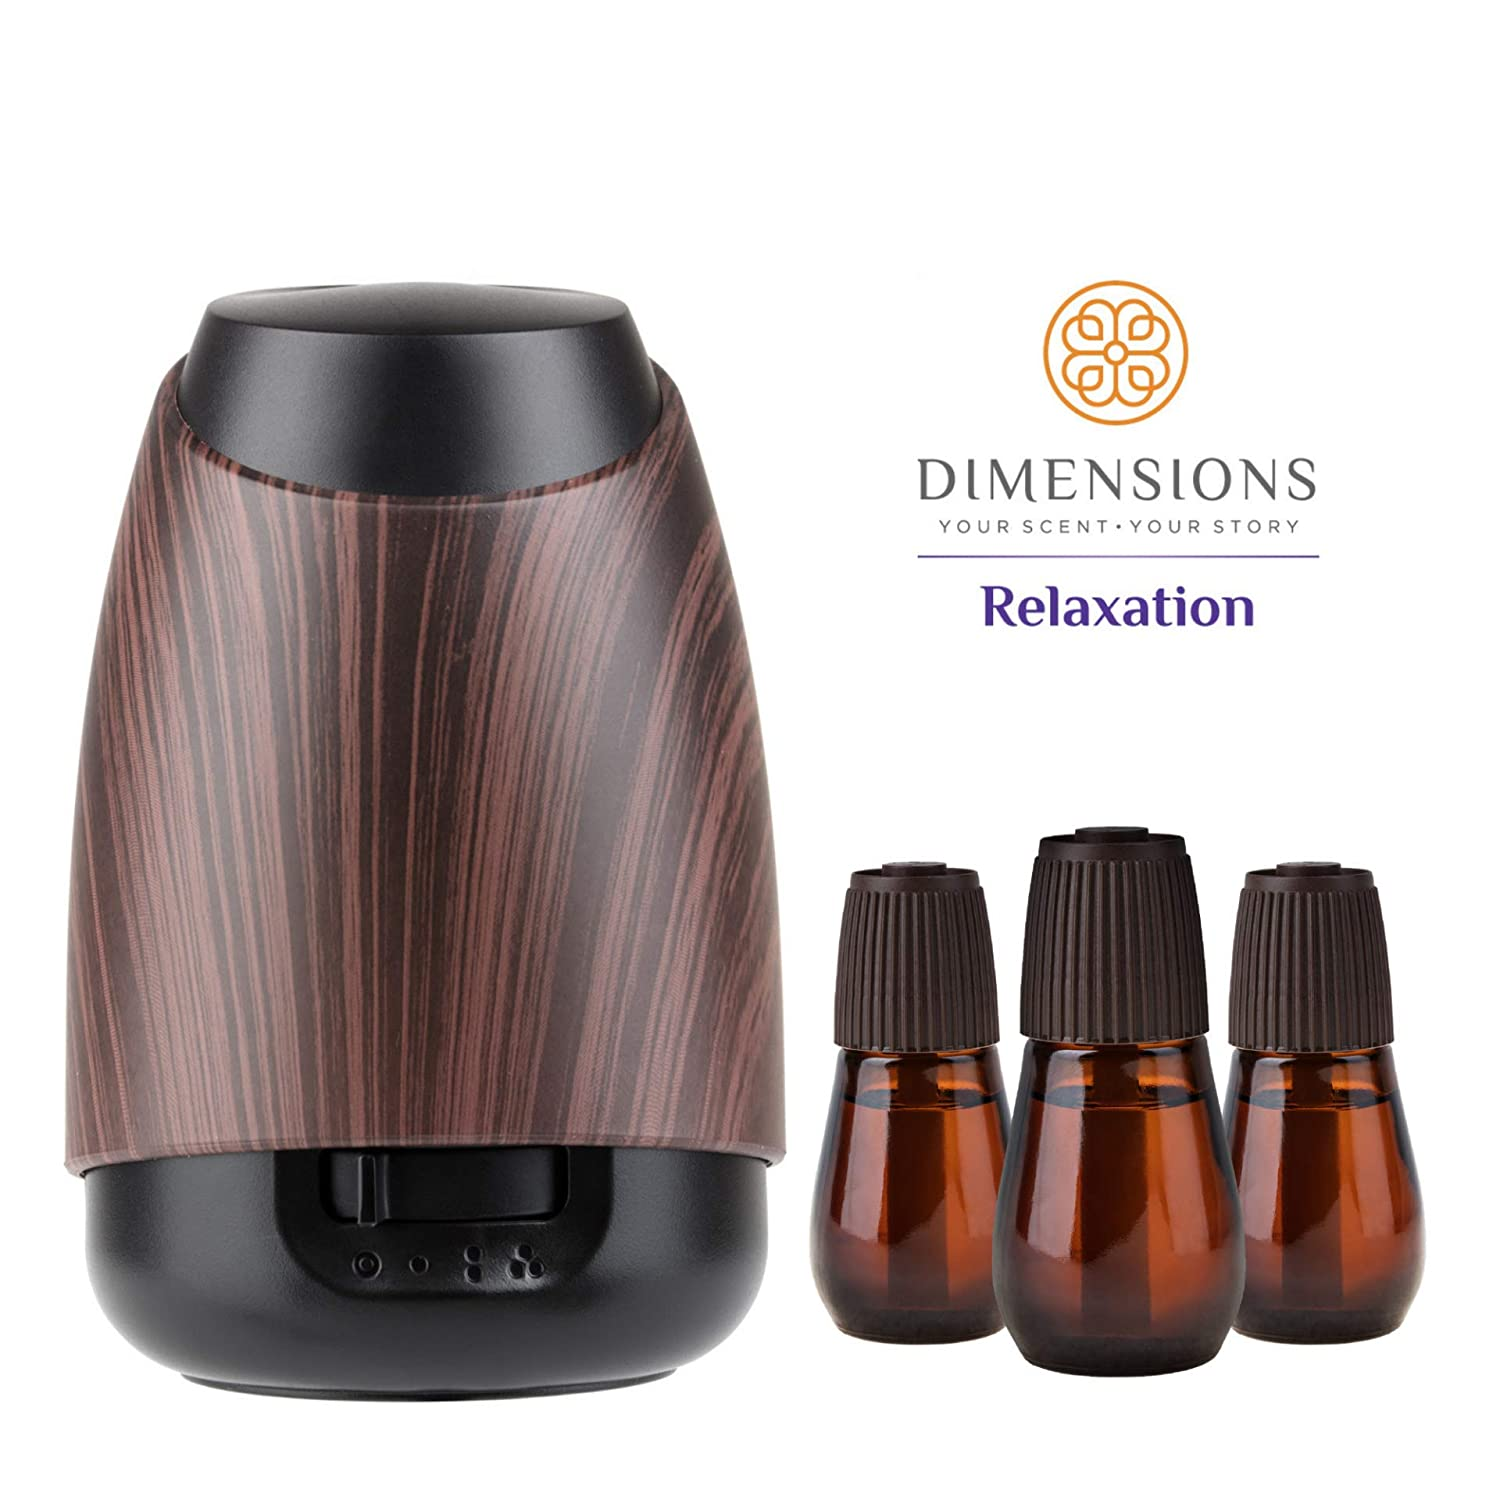 Dimensions Relaxation Collection - 3 Pre-blended Fragrance Refills and Fragrance Diffuser for up to 4 Months of Brilliant Fragrance for Home & Office